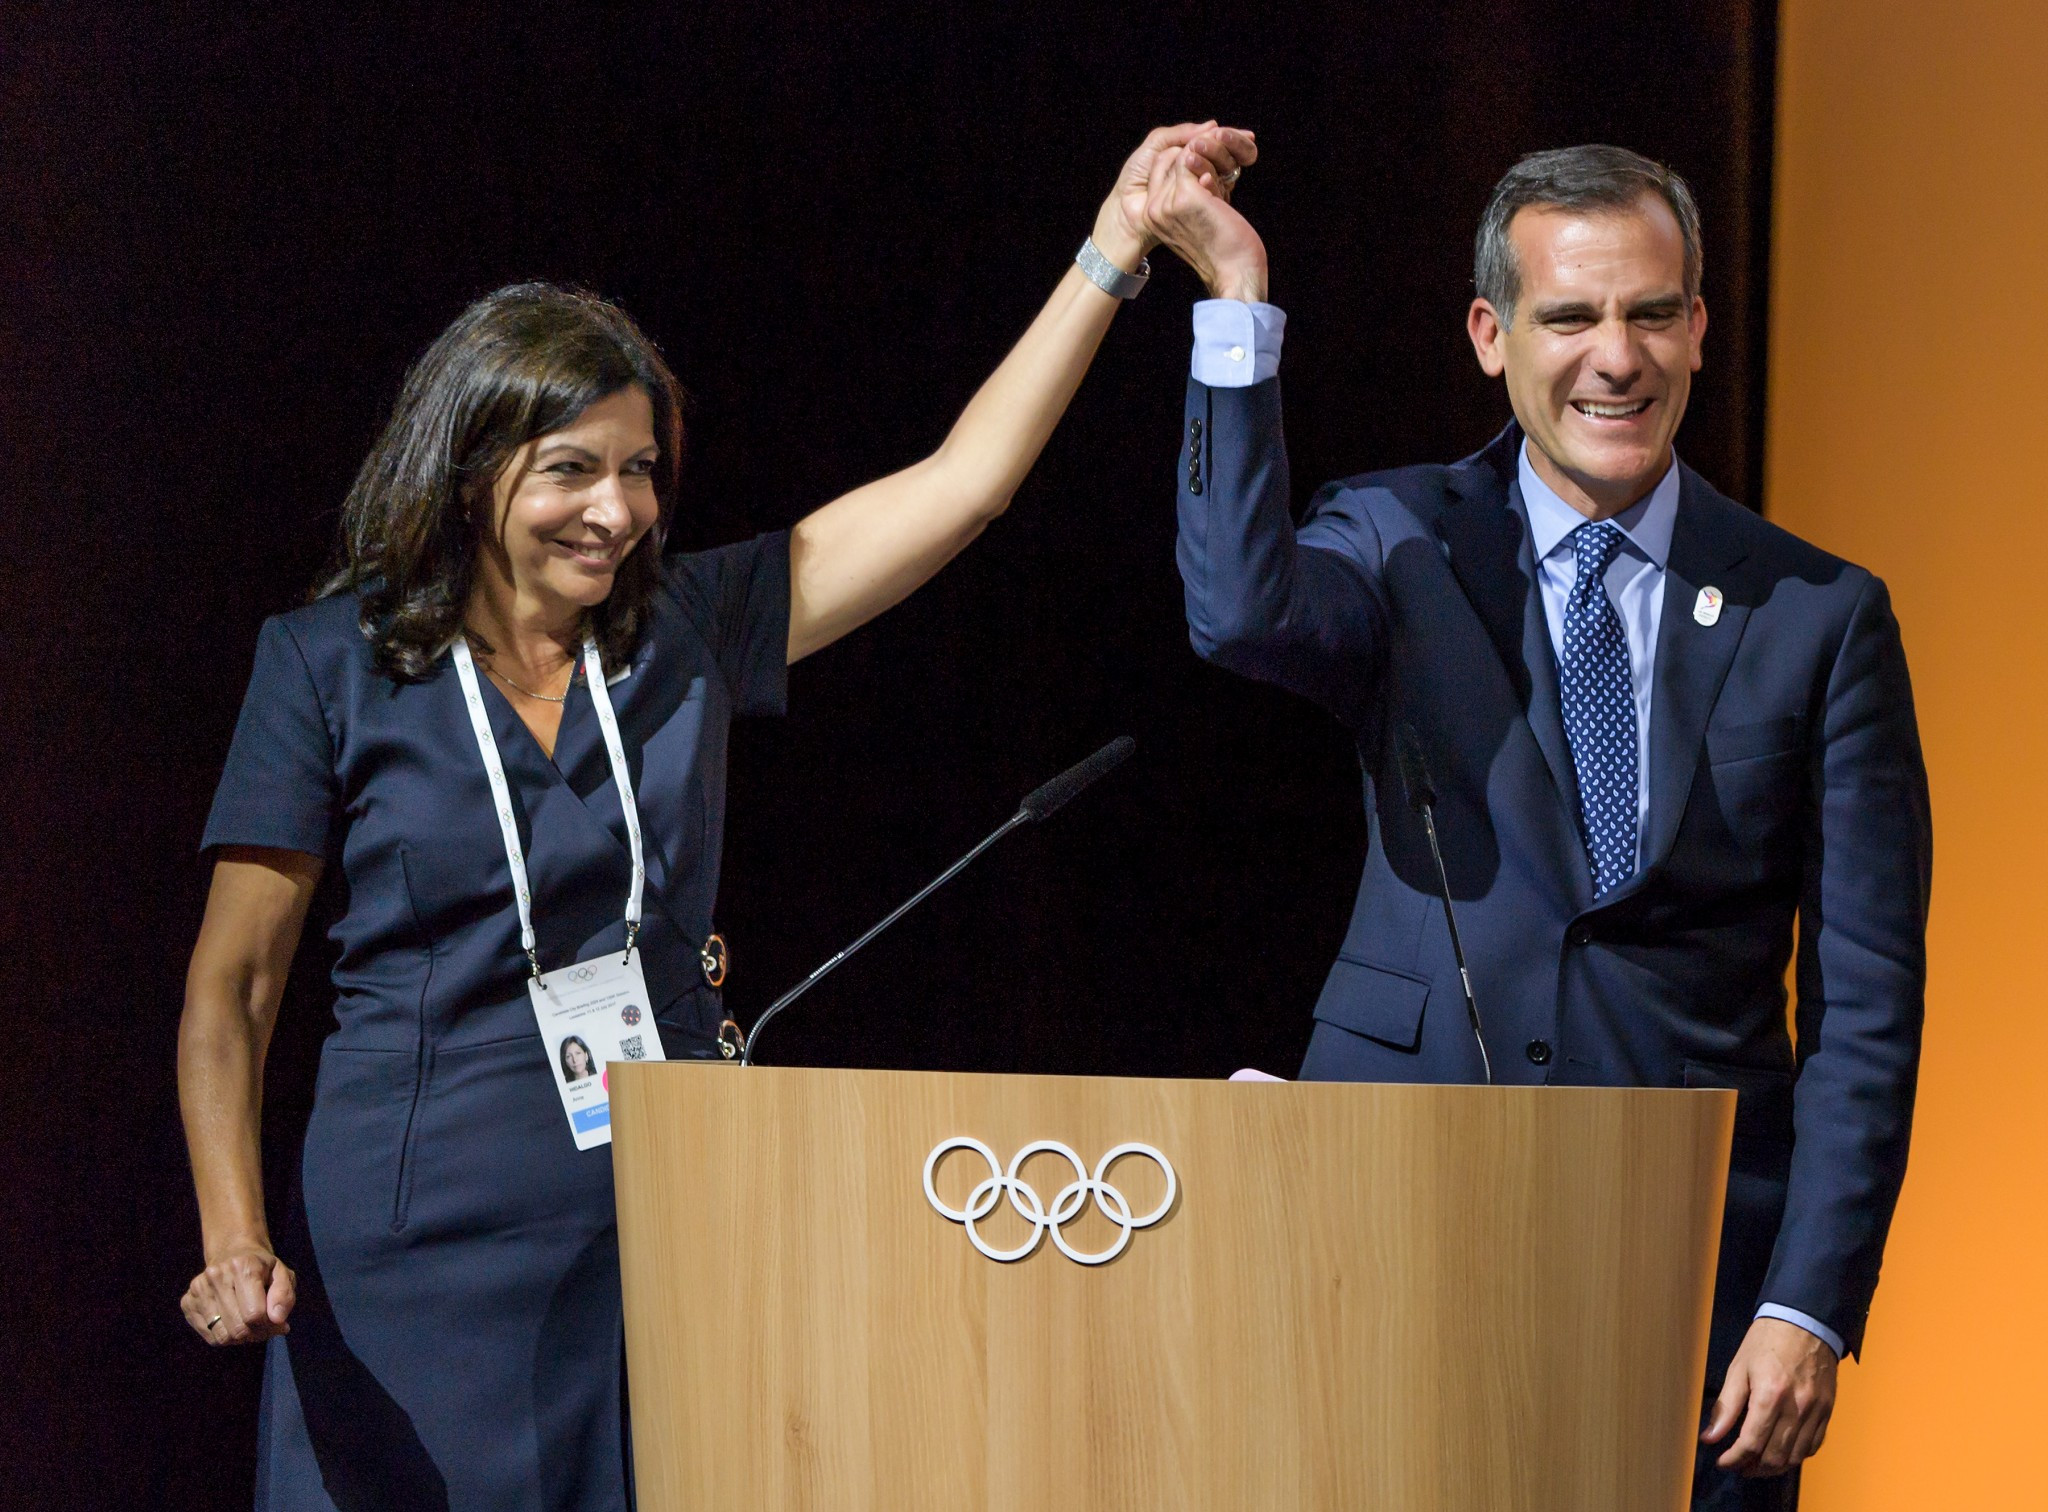 Los Angeles 2028 gets official State backing after Californian Governor signs financial guarantees